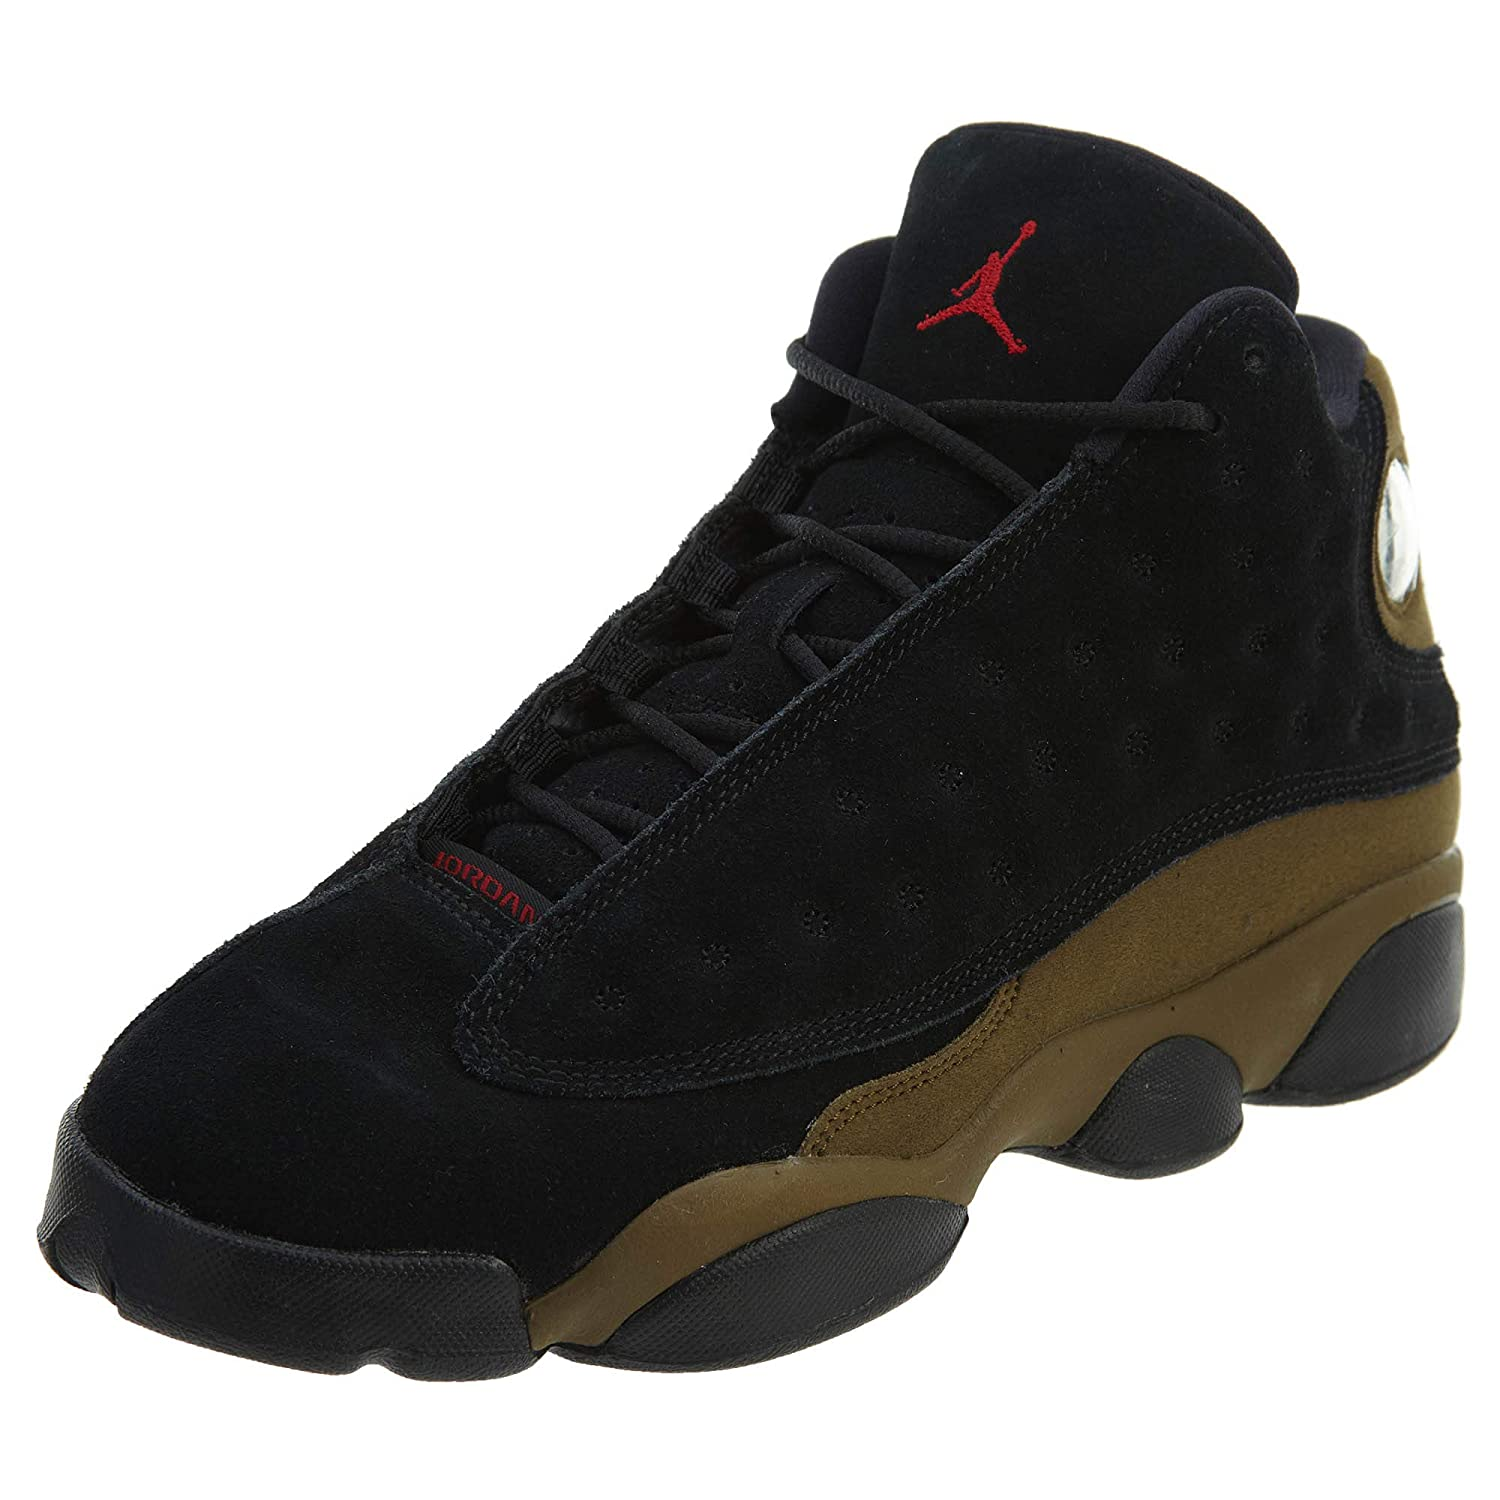 Jordan Air 13 Retro BG Big Kids Sneakers Black/Gym Red/Light Olive 884129-006